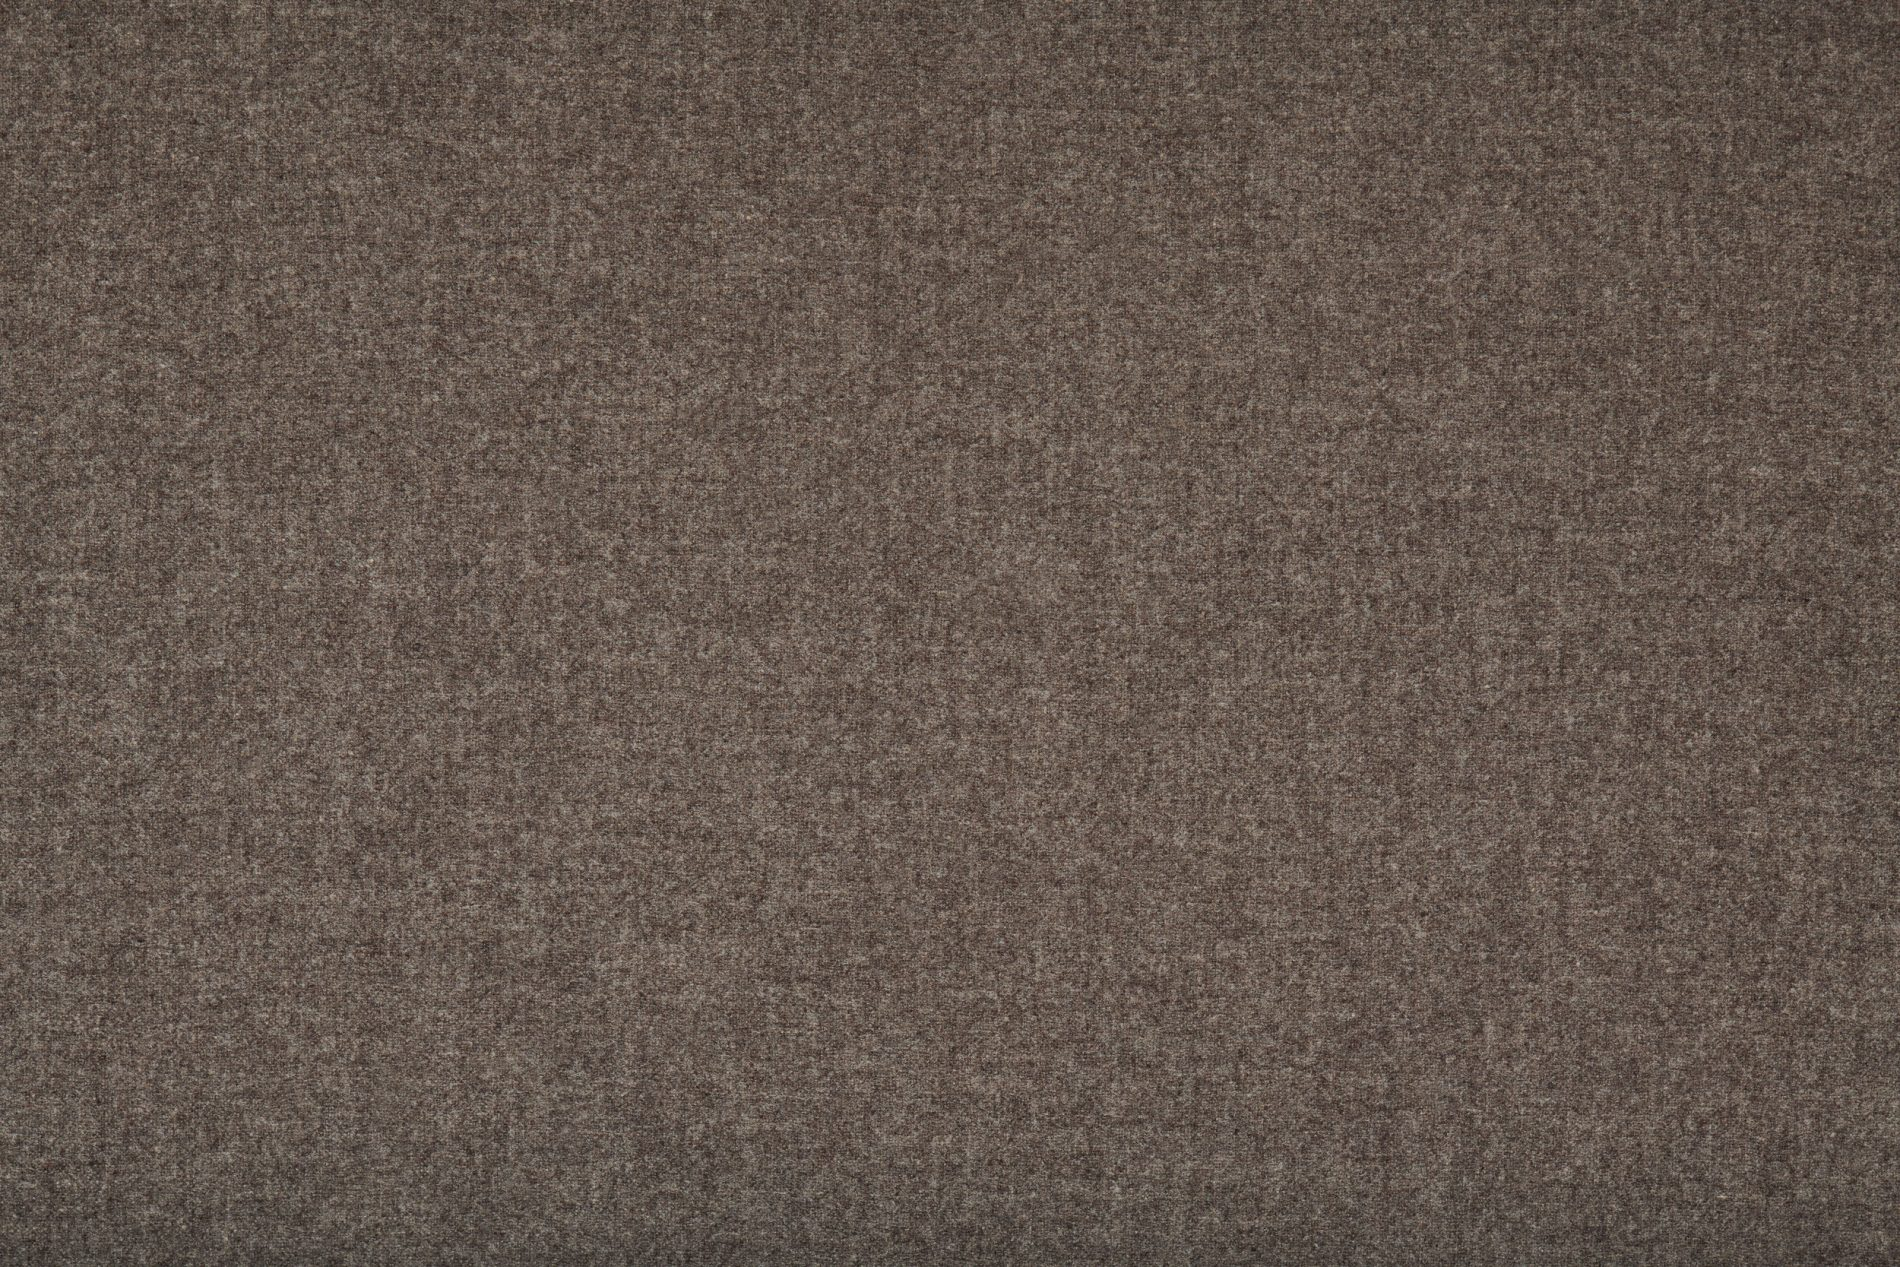 PURE 450 Plain Merino wool (15/5003)